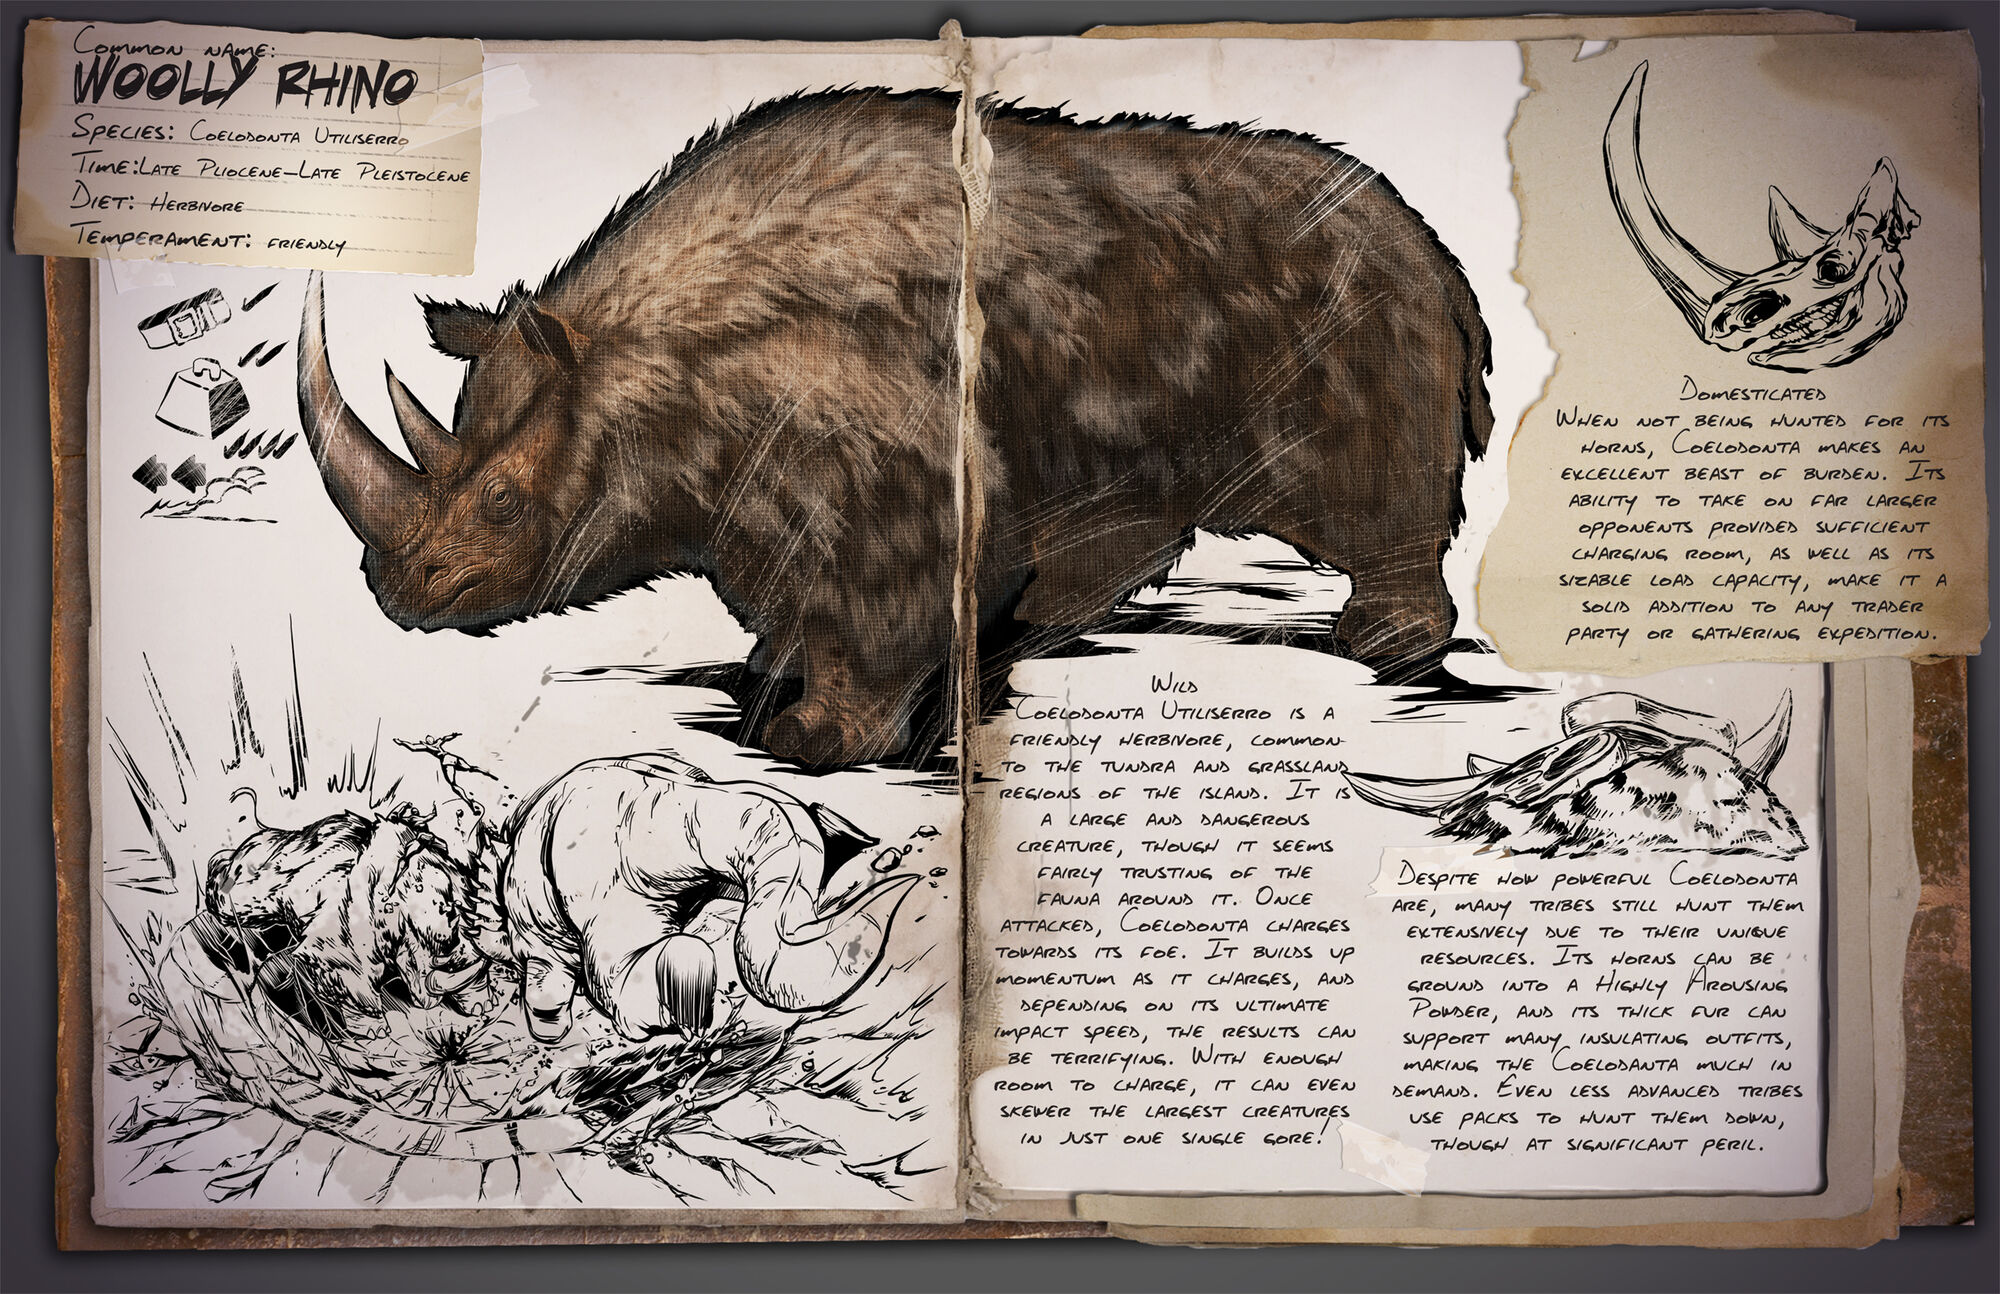 Woolly rhino ark survival evolved wiki fandom powered by wikia malvernweather Images